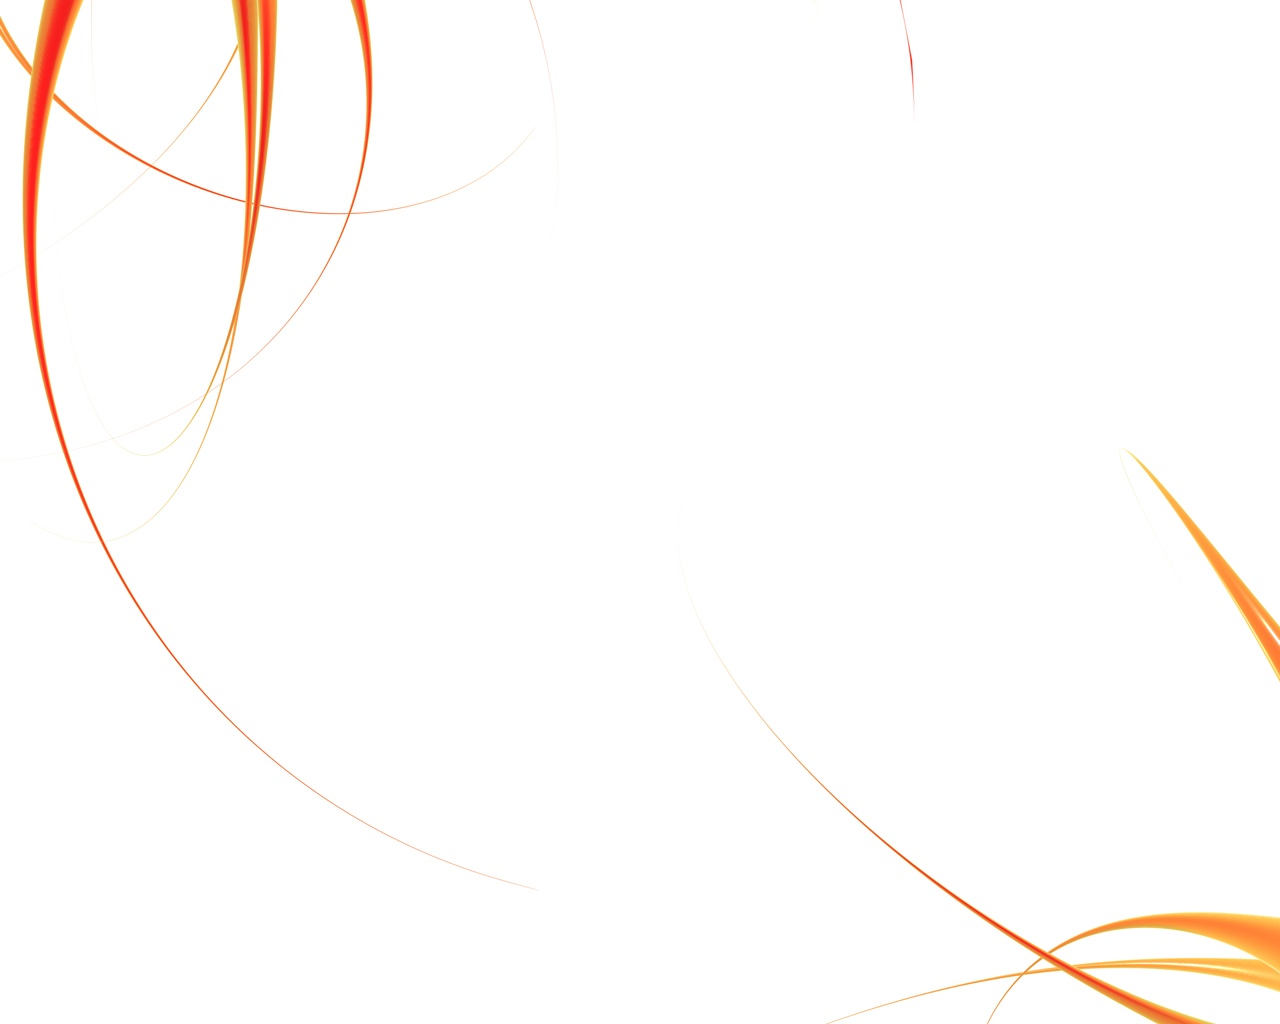 Cool Orange And White Backgrounds Orange white by laura patricia 1280x1024